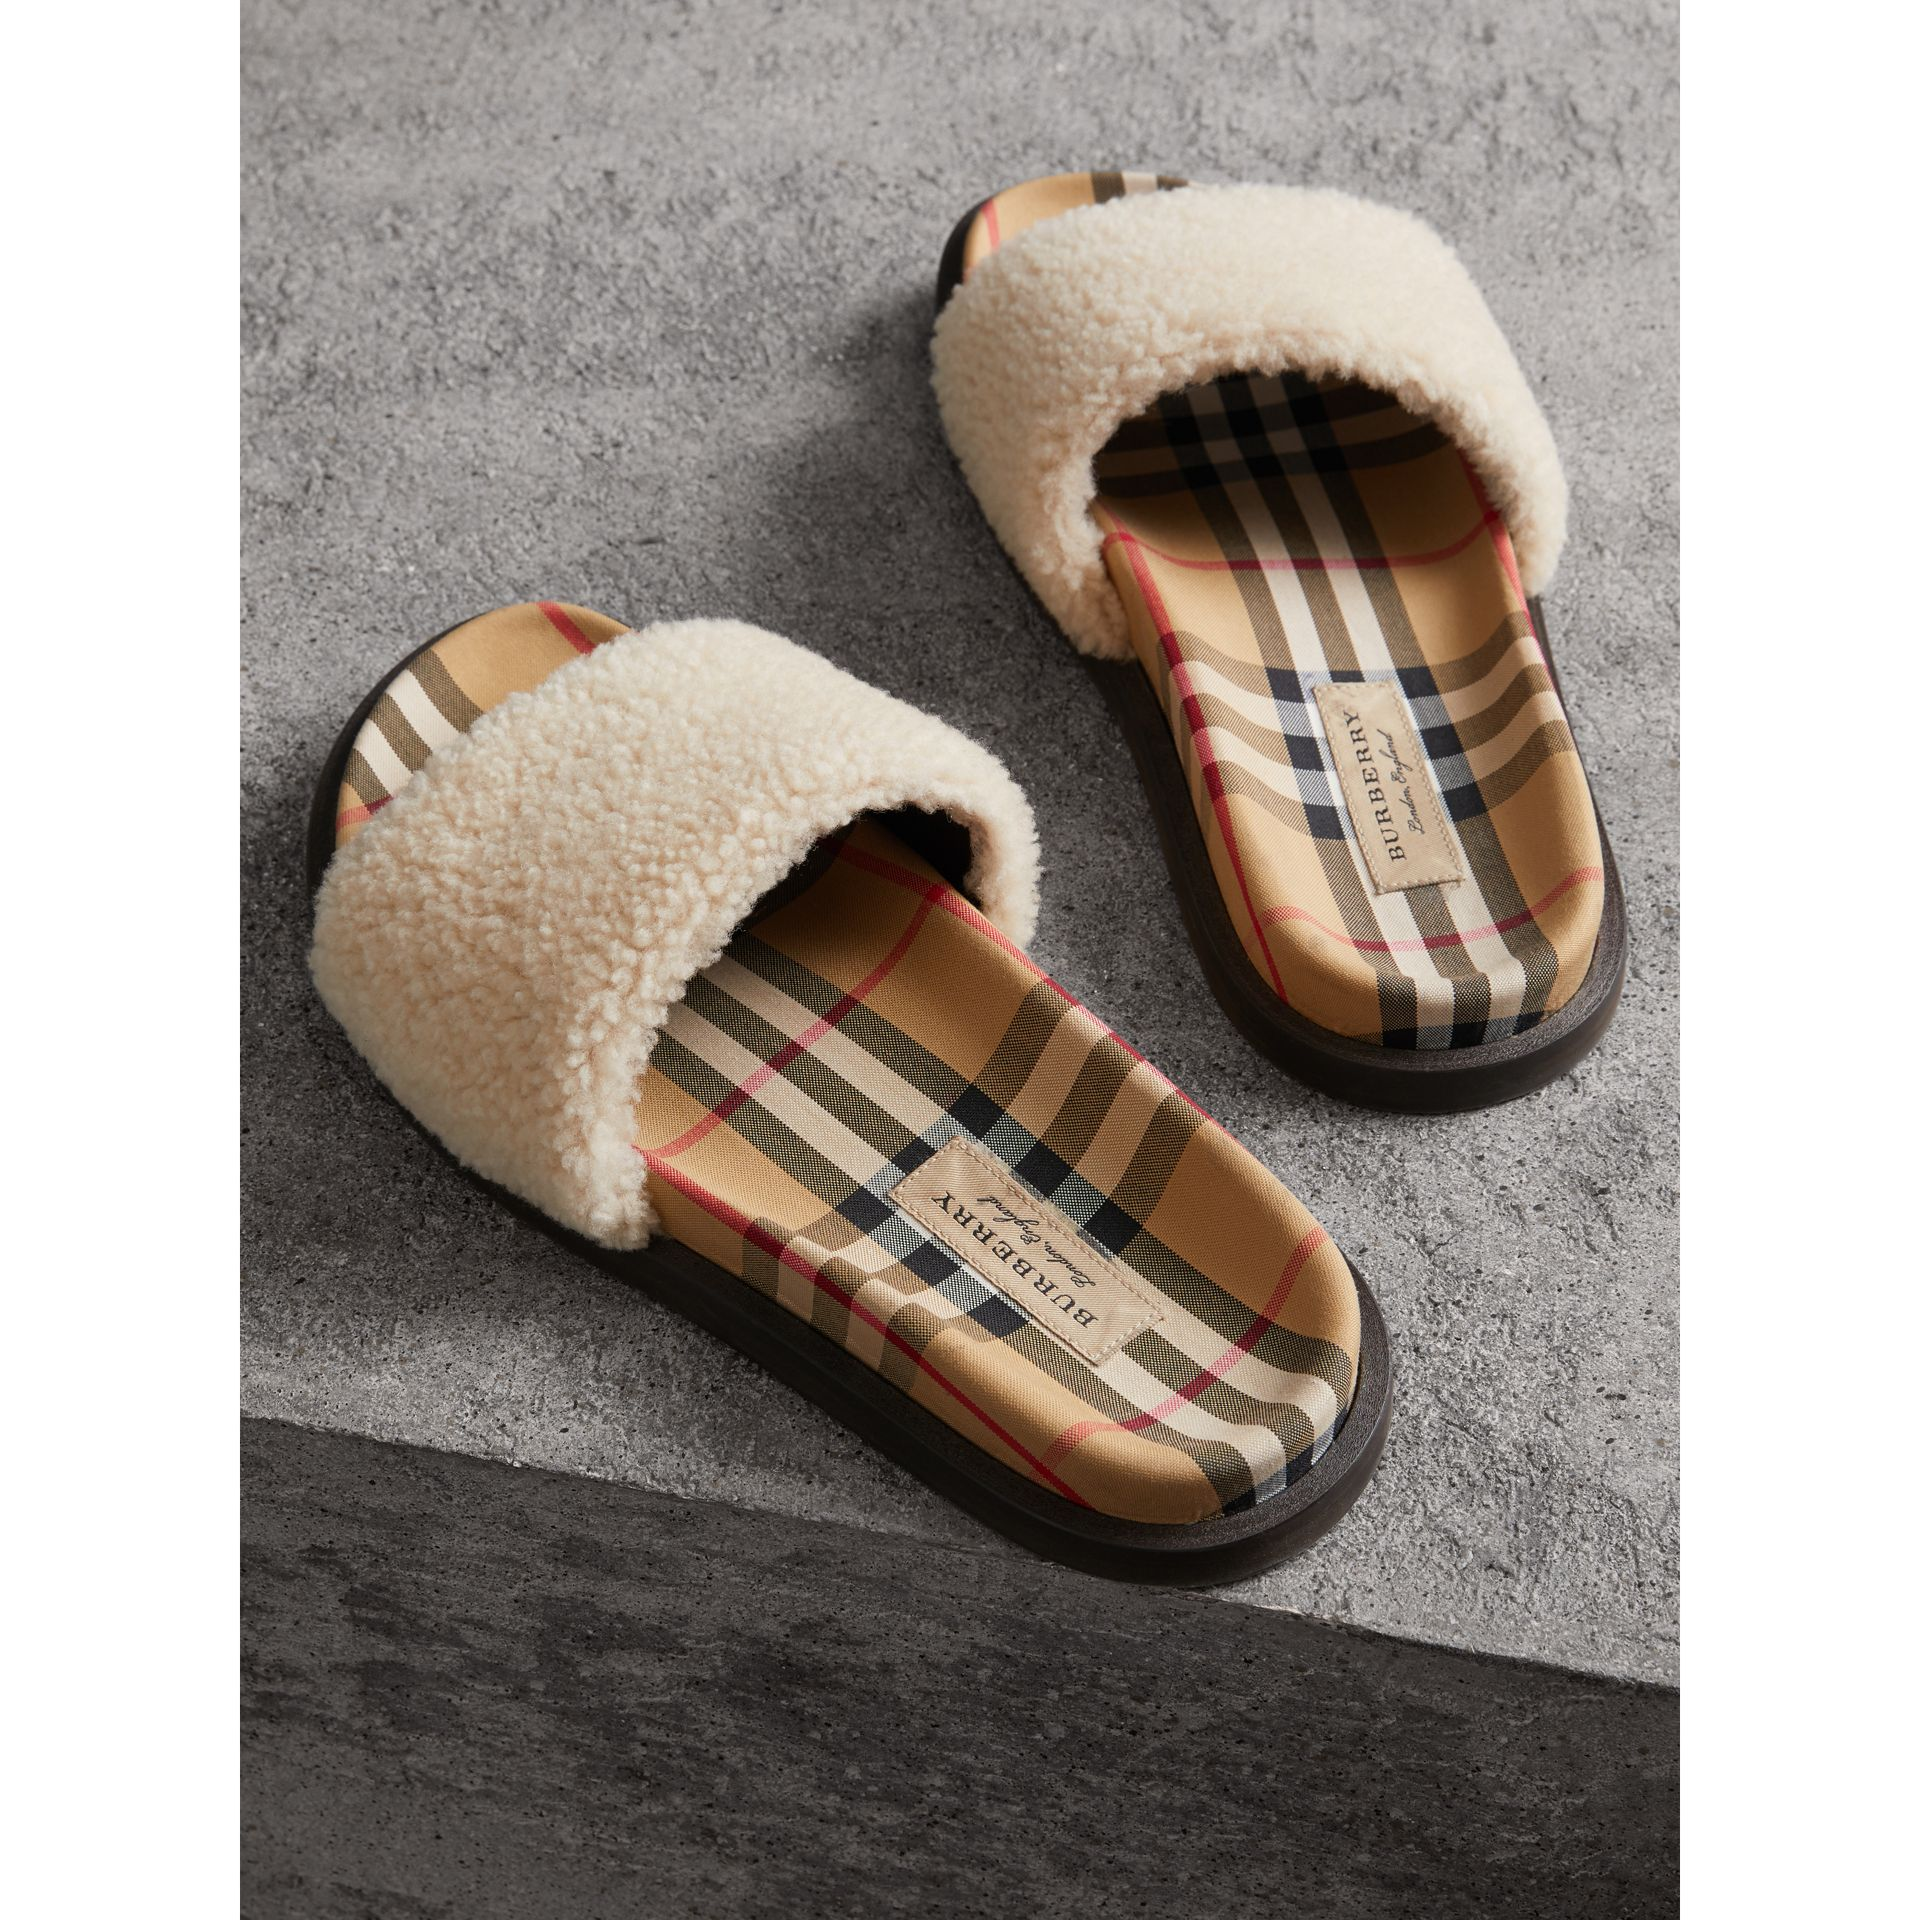 Shearling and Vintage Check Slides in Natural - Women | Burberry Australia - gallery image 3